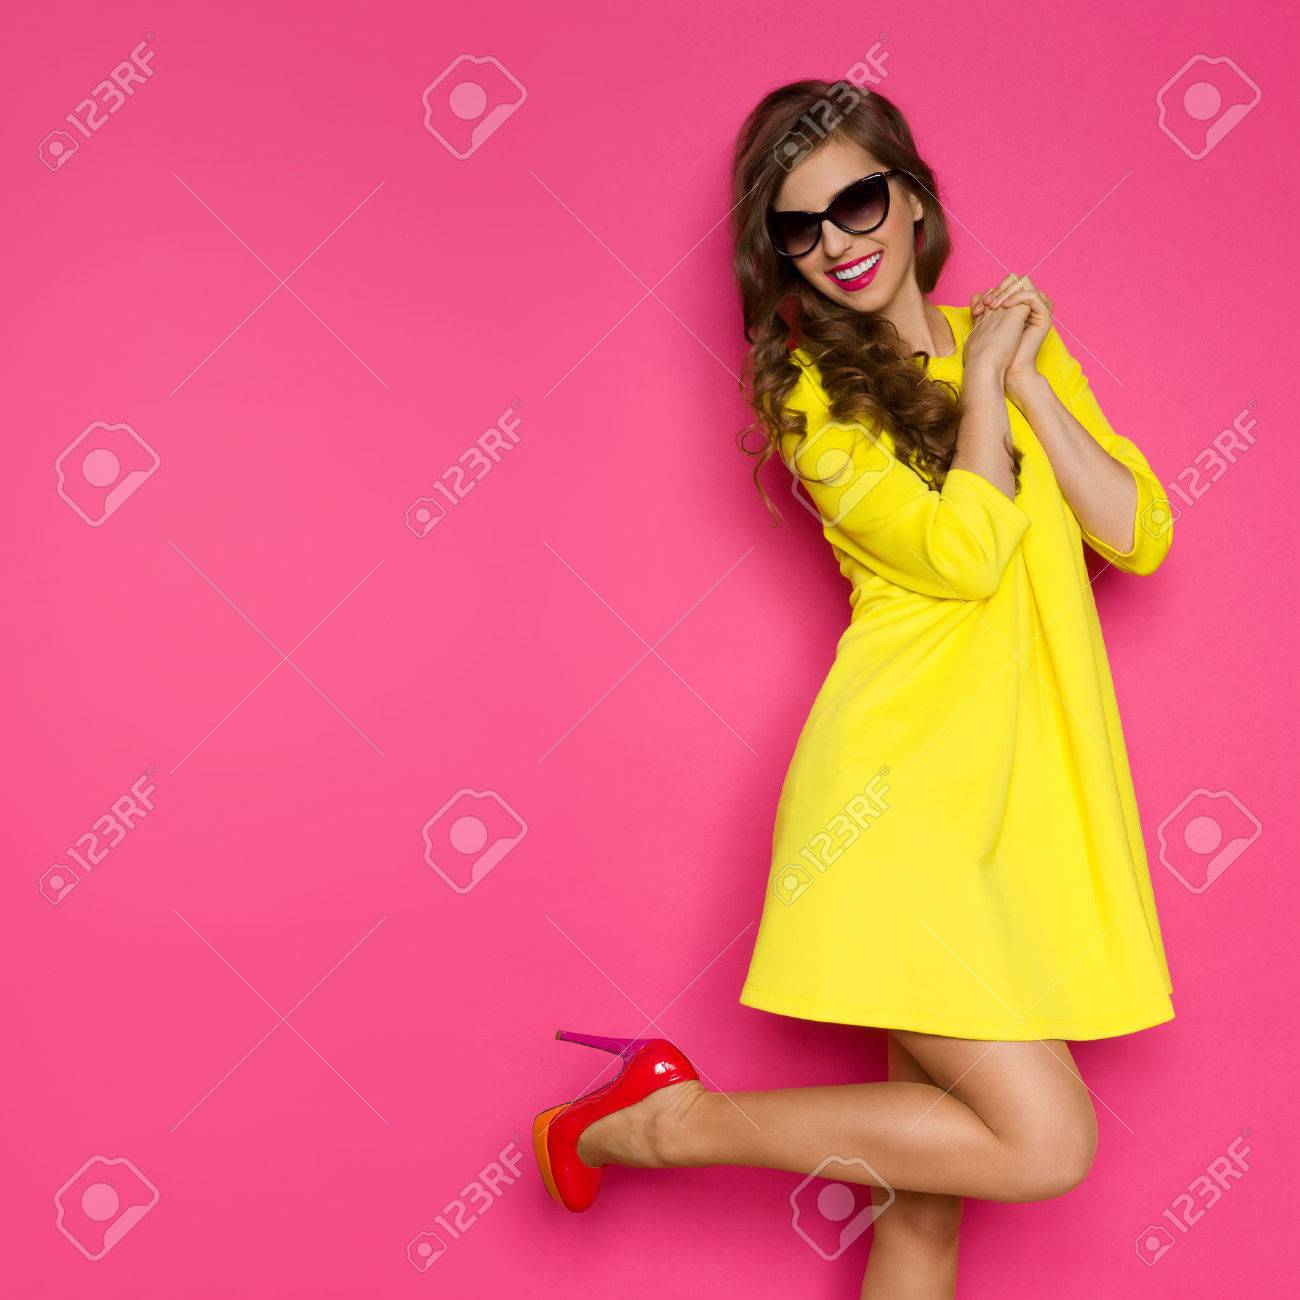 Excited girl in yellow mini dress posing on one leg against pink background. Three quarter length studio shot. - 53386056